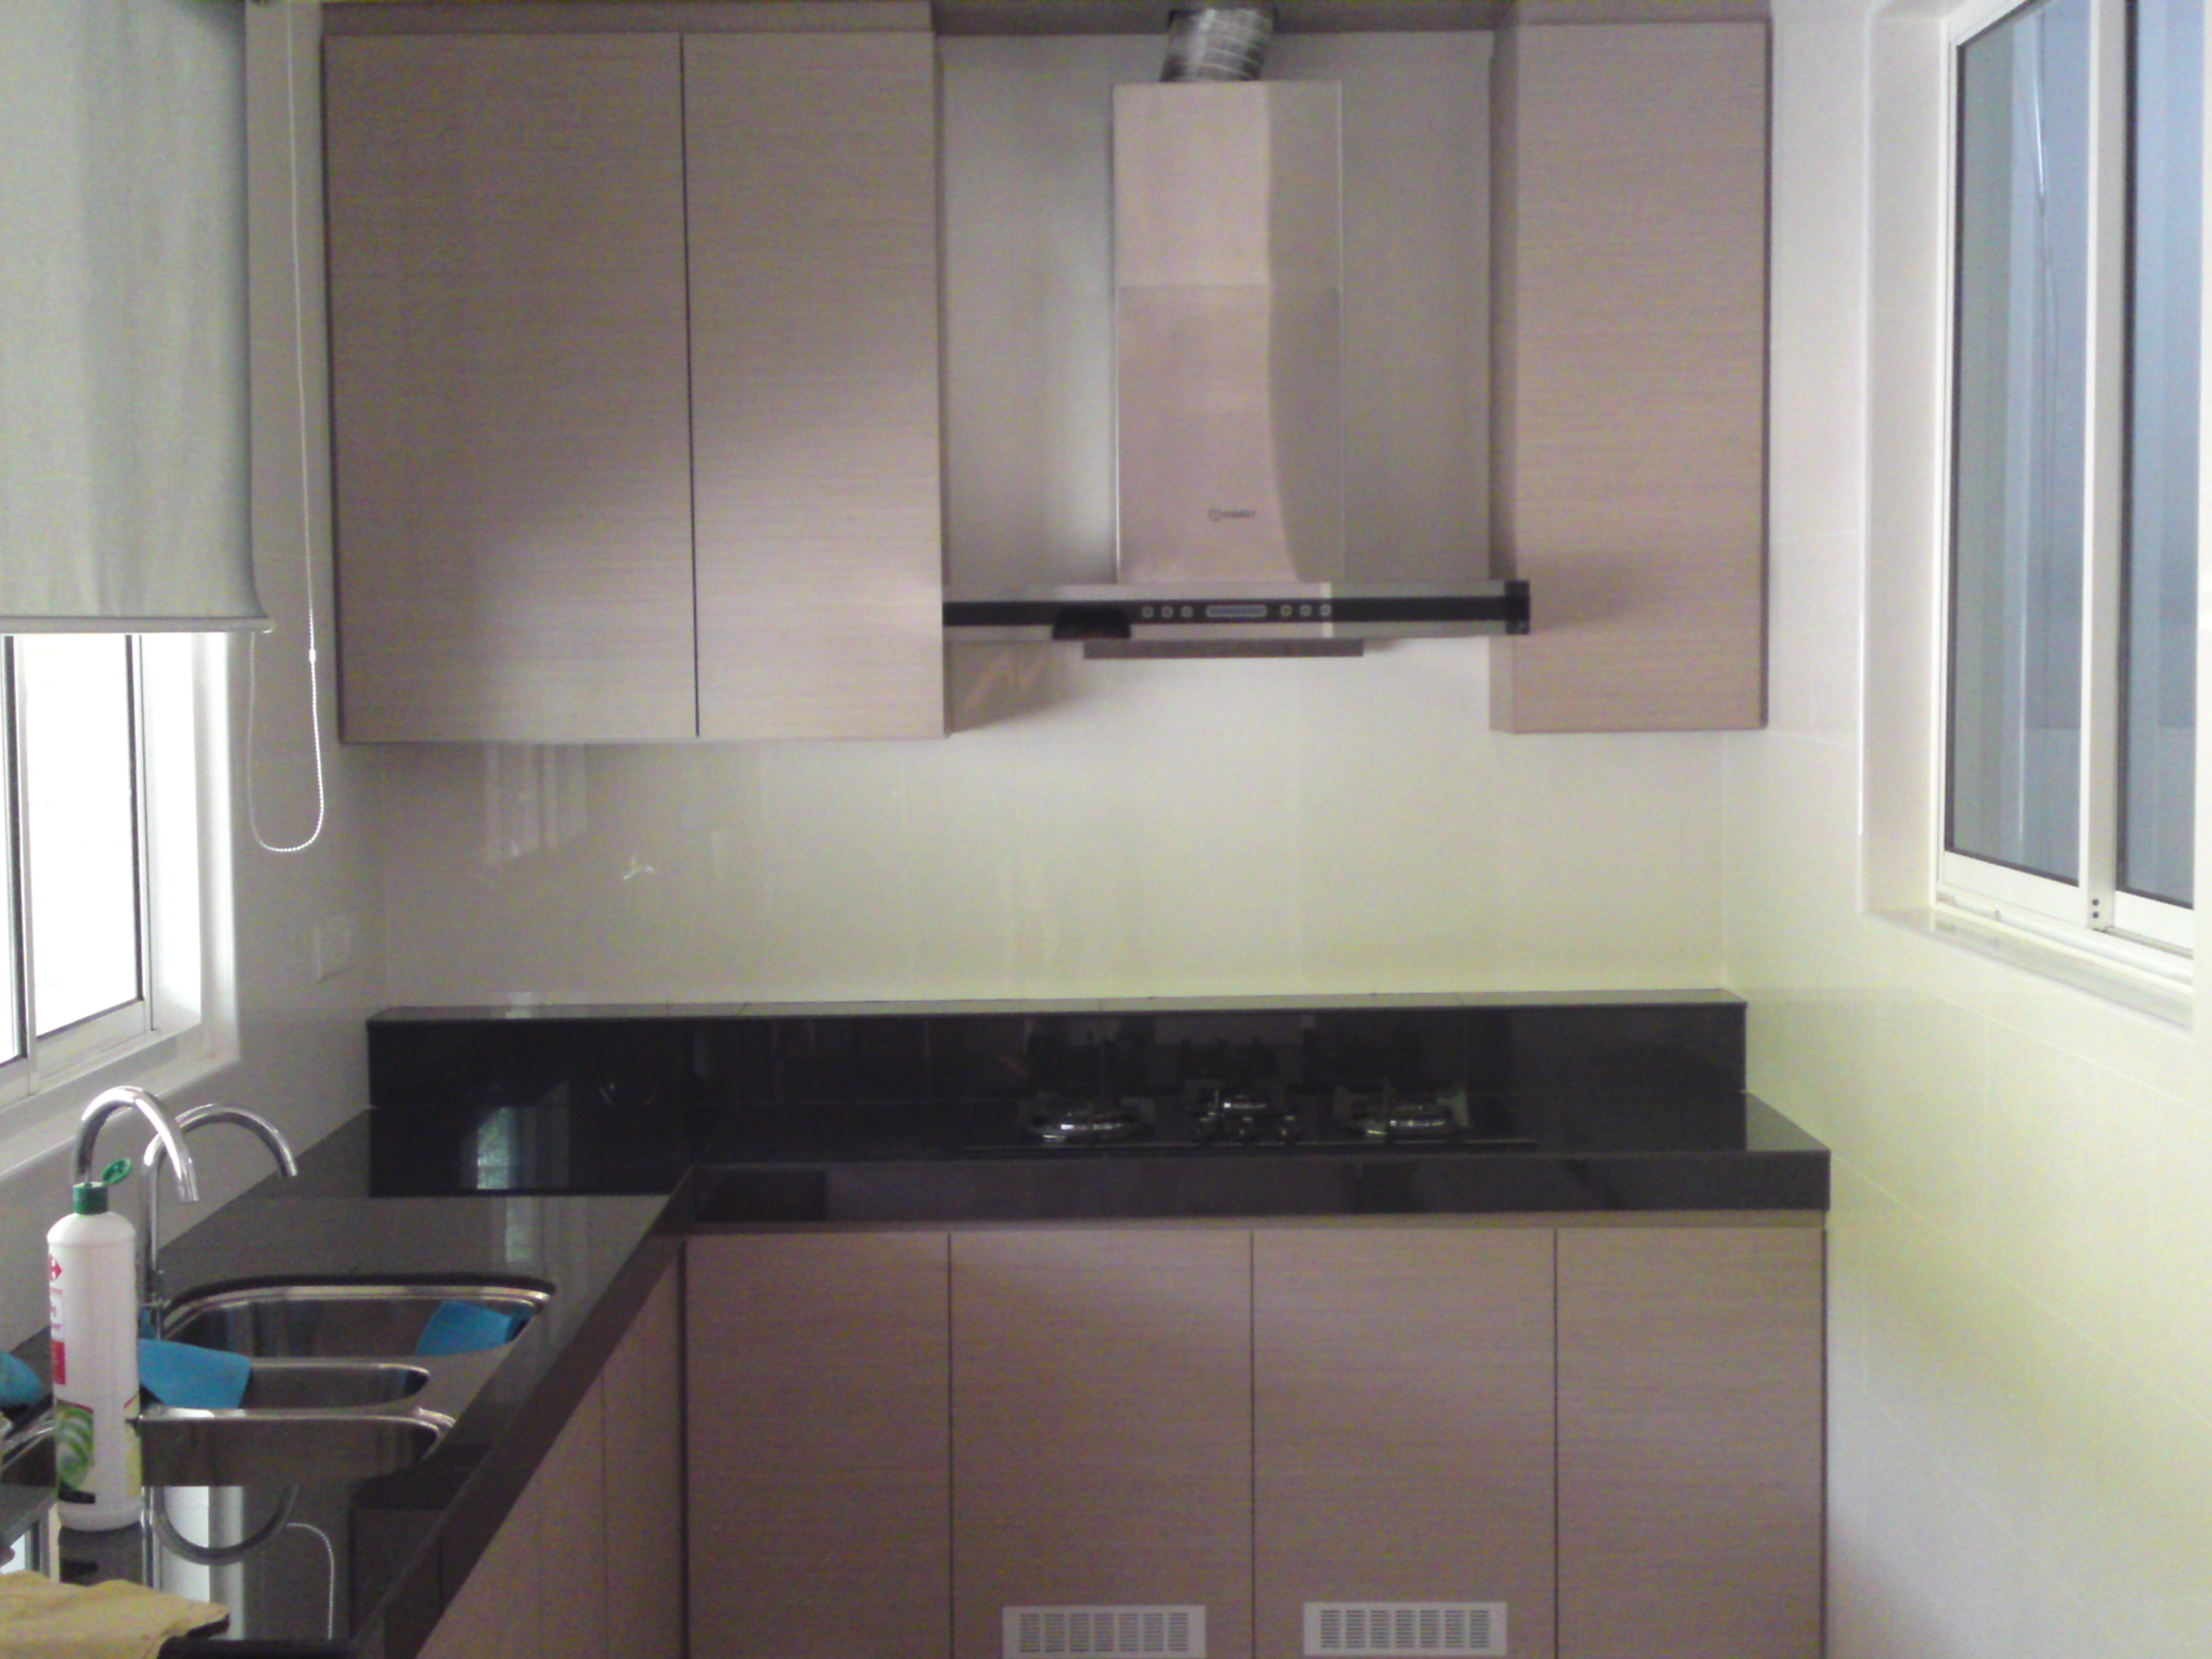 formica kitchen cabinets laminate kitchen cabinets Painting Or Refacing Formica Cabinets